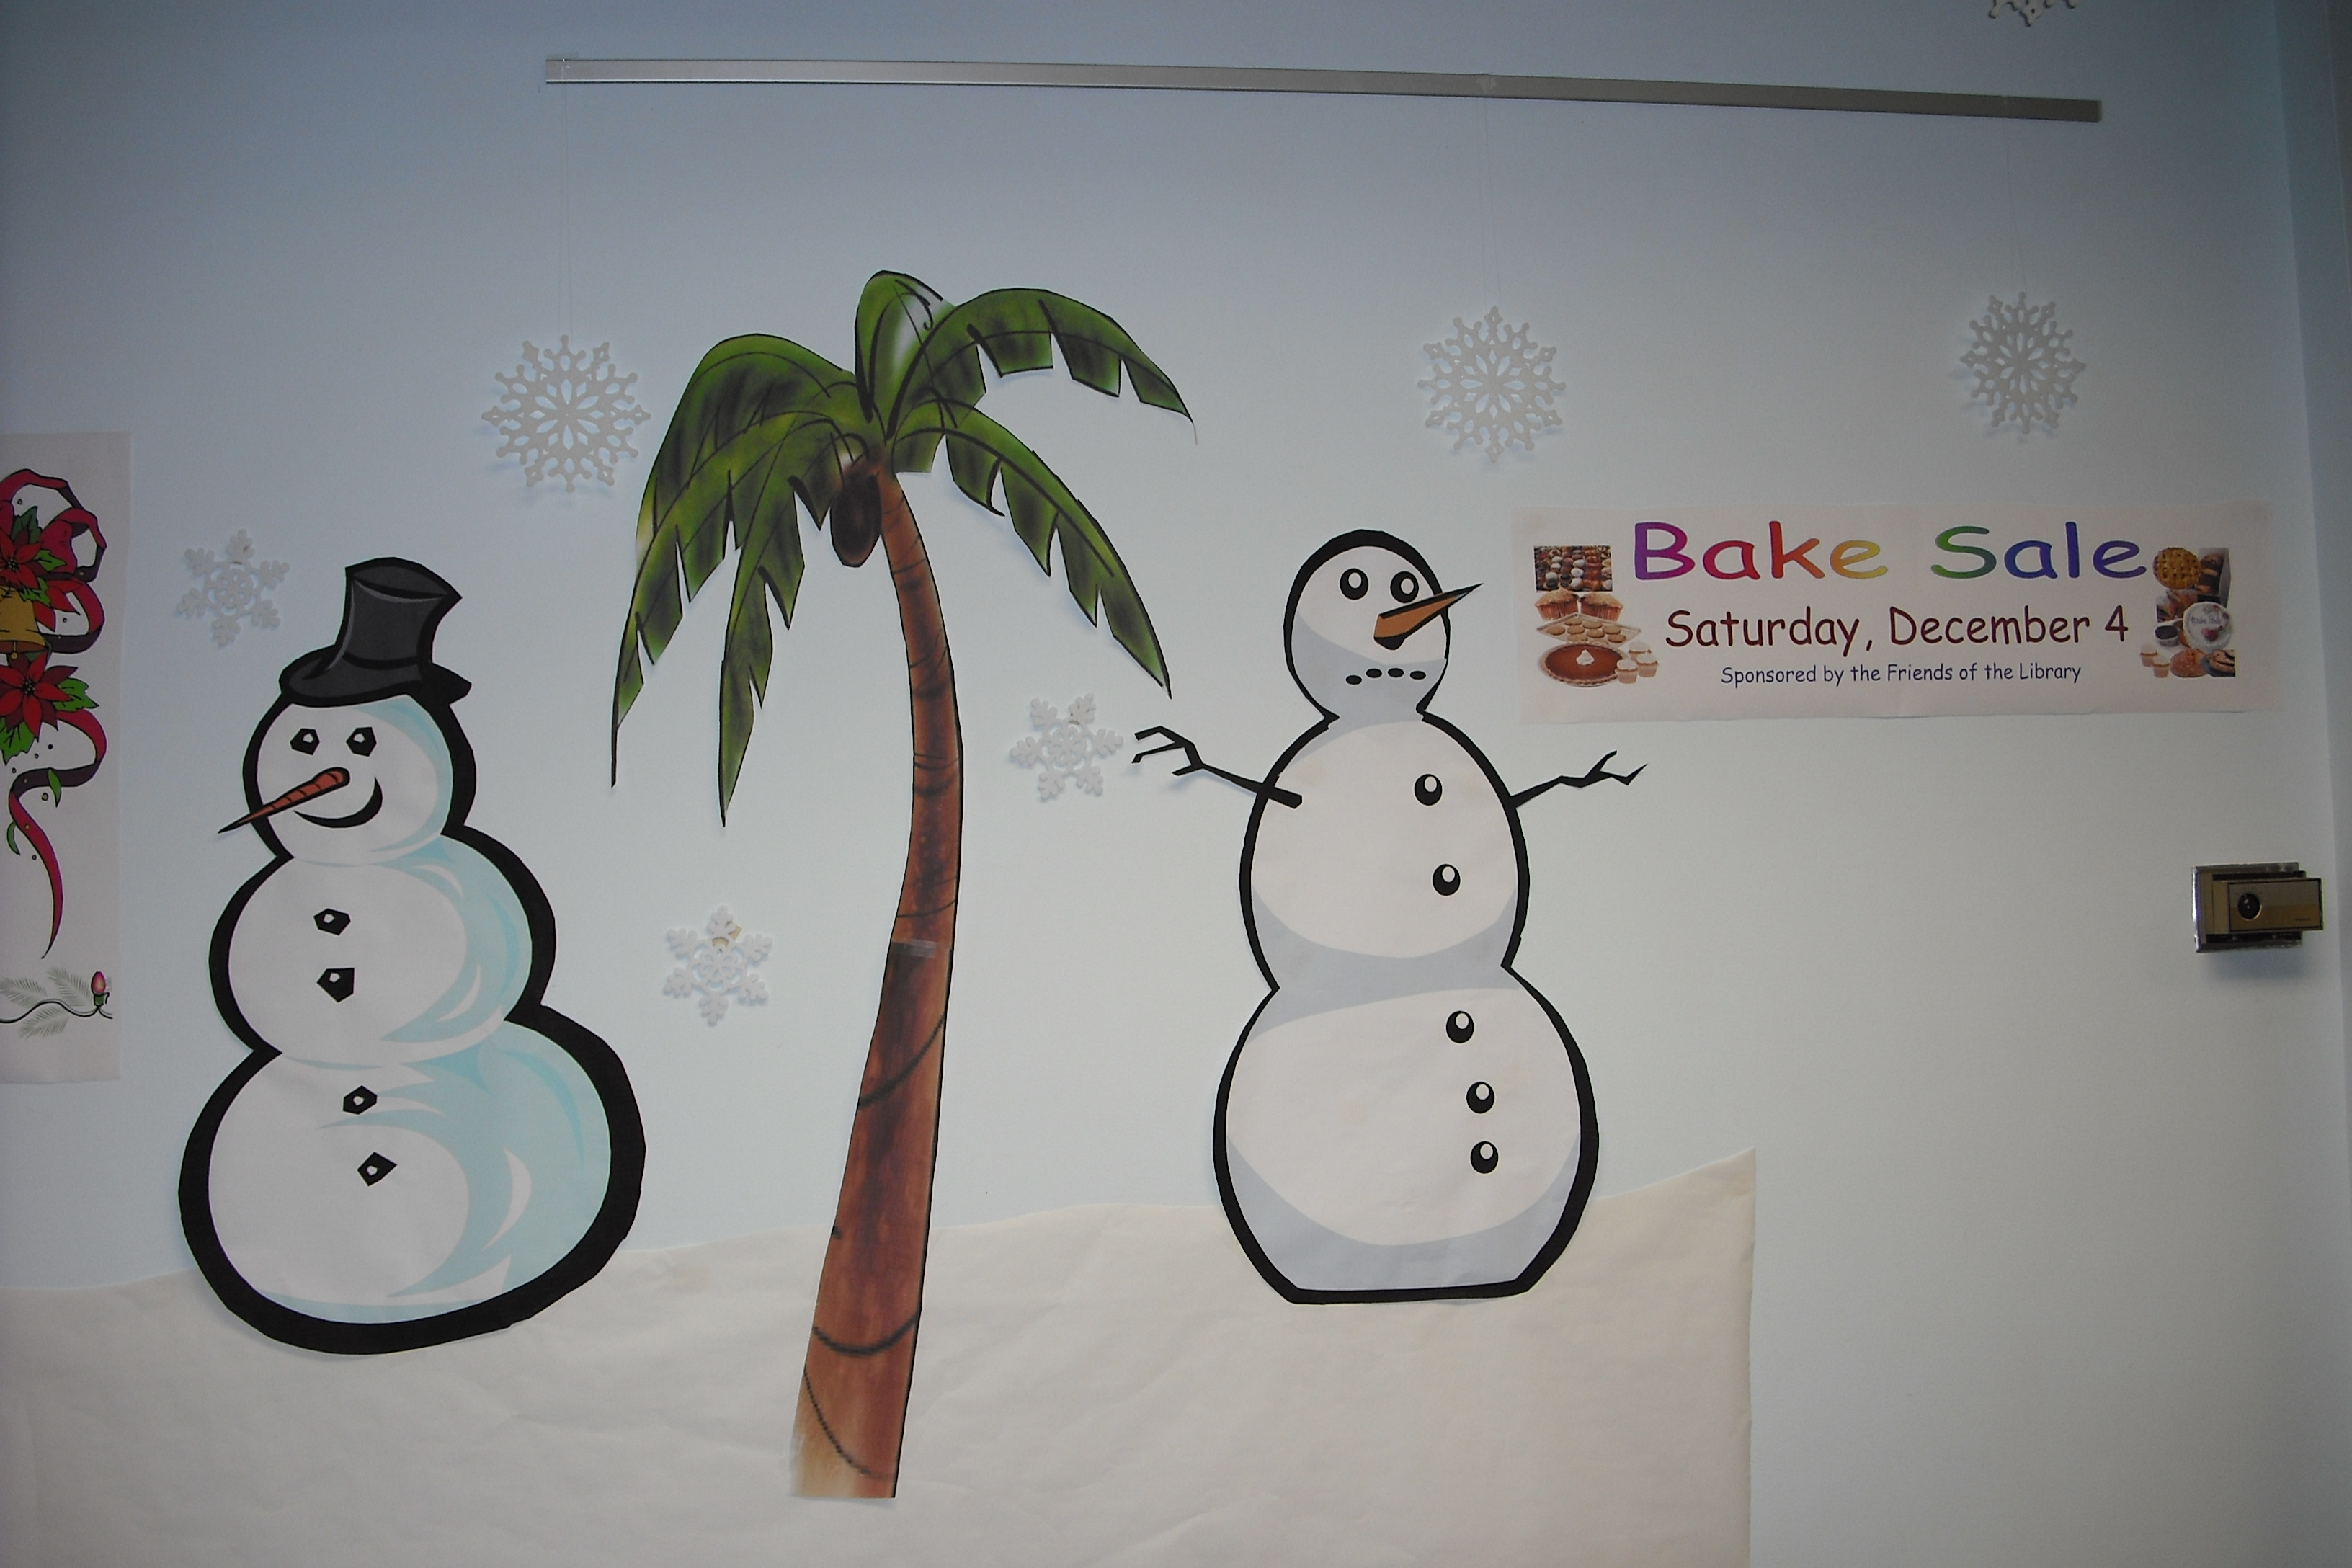 A snowman frowns at a bake sale poster